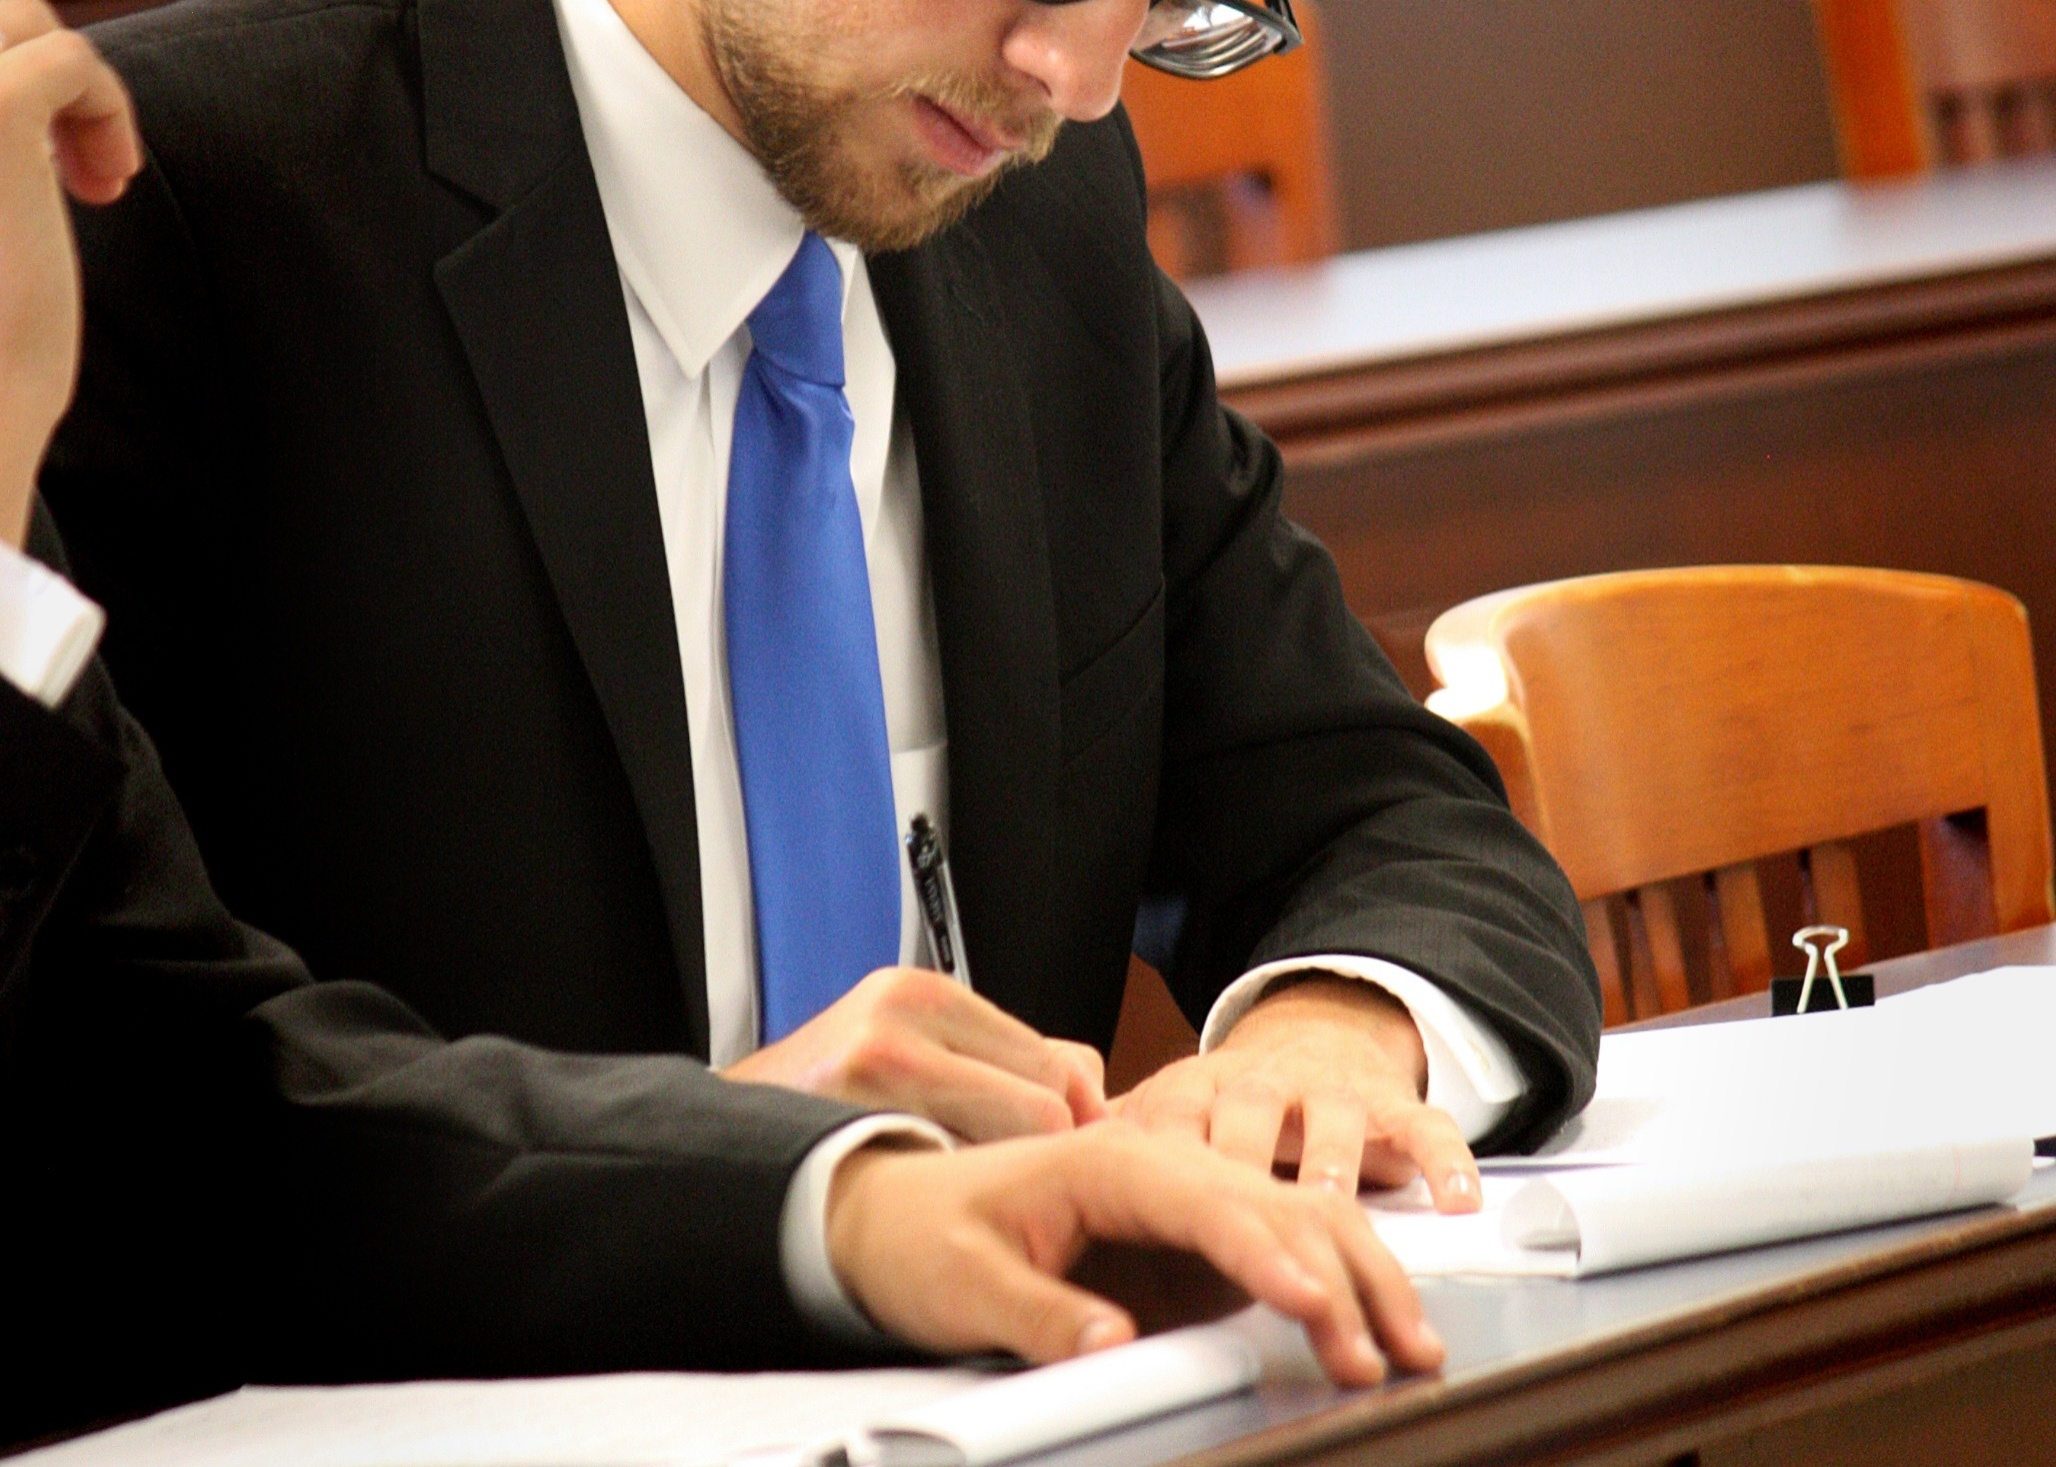 Moot_Court-613149-edited.jpg